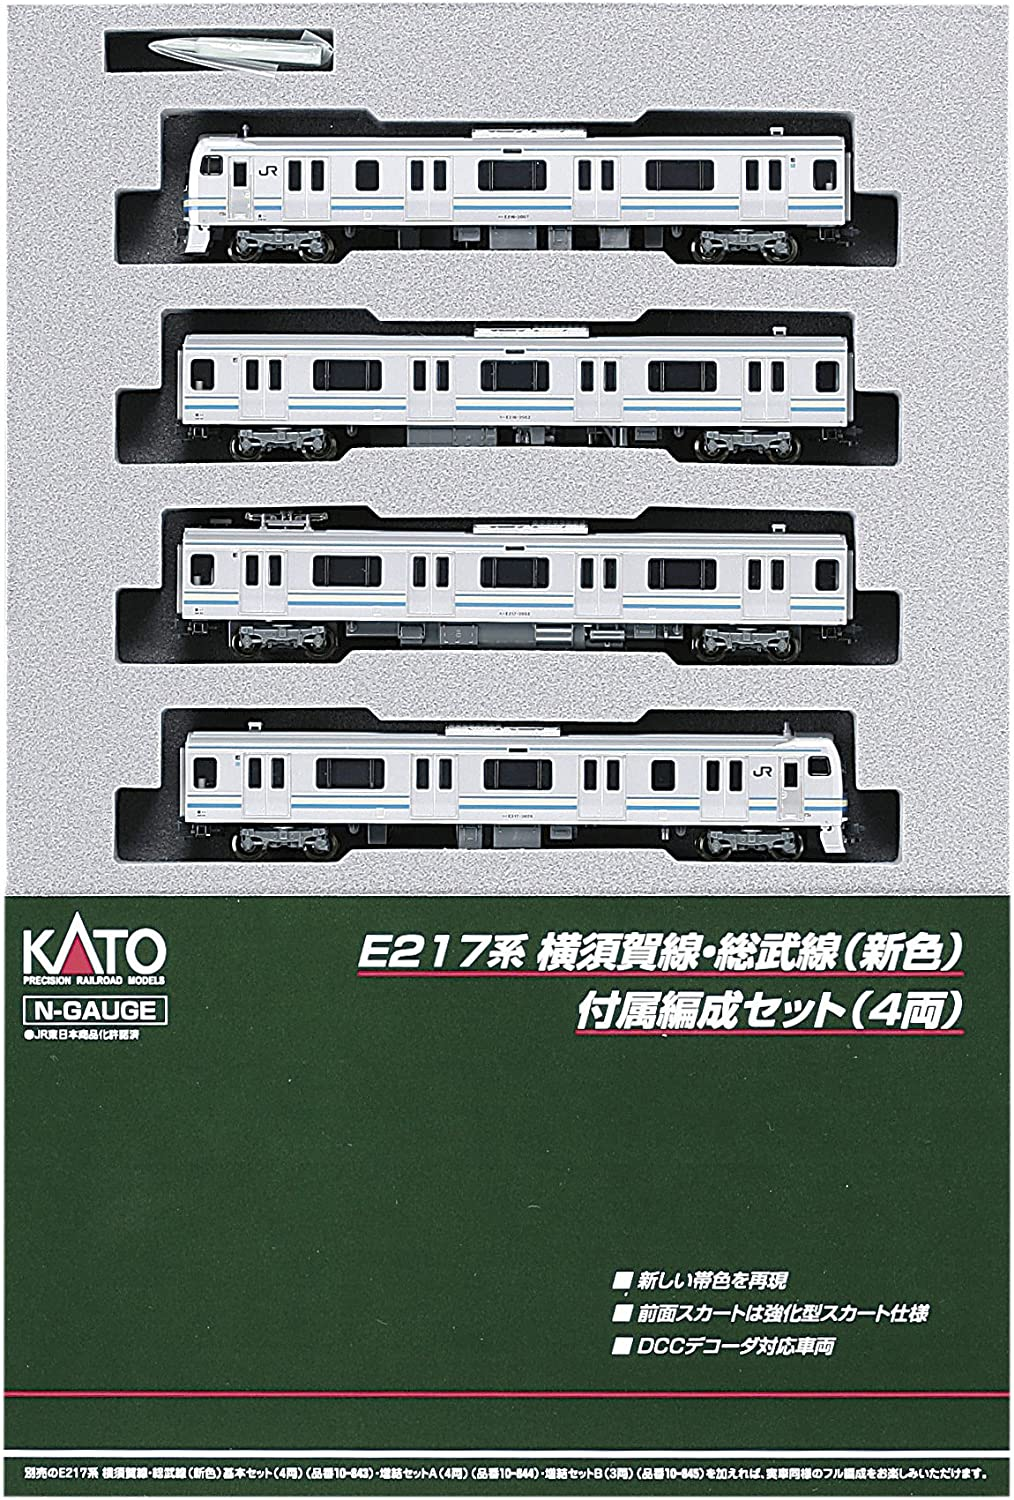 A la venta con descuento del 70%. Kato N Gauge \tSeries E217 Yokosuka Line & & & Sobu Line (New Color) (Aid Formation 4-Coche Set) (Kato PlaRail Model Train) (japan import)  marca en liquidación de venta